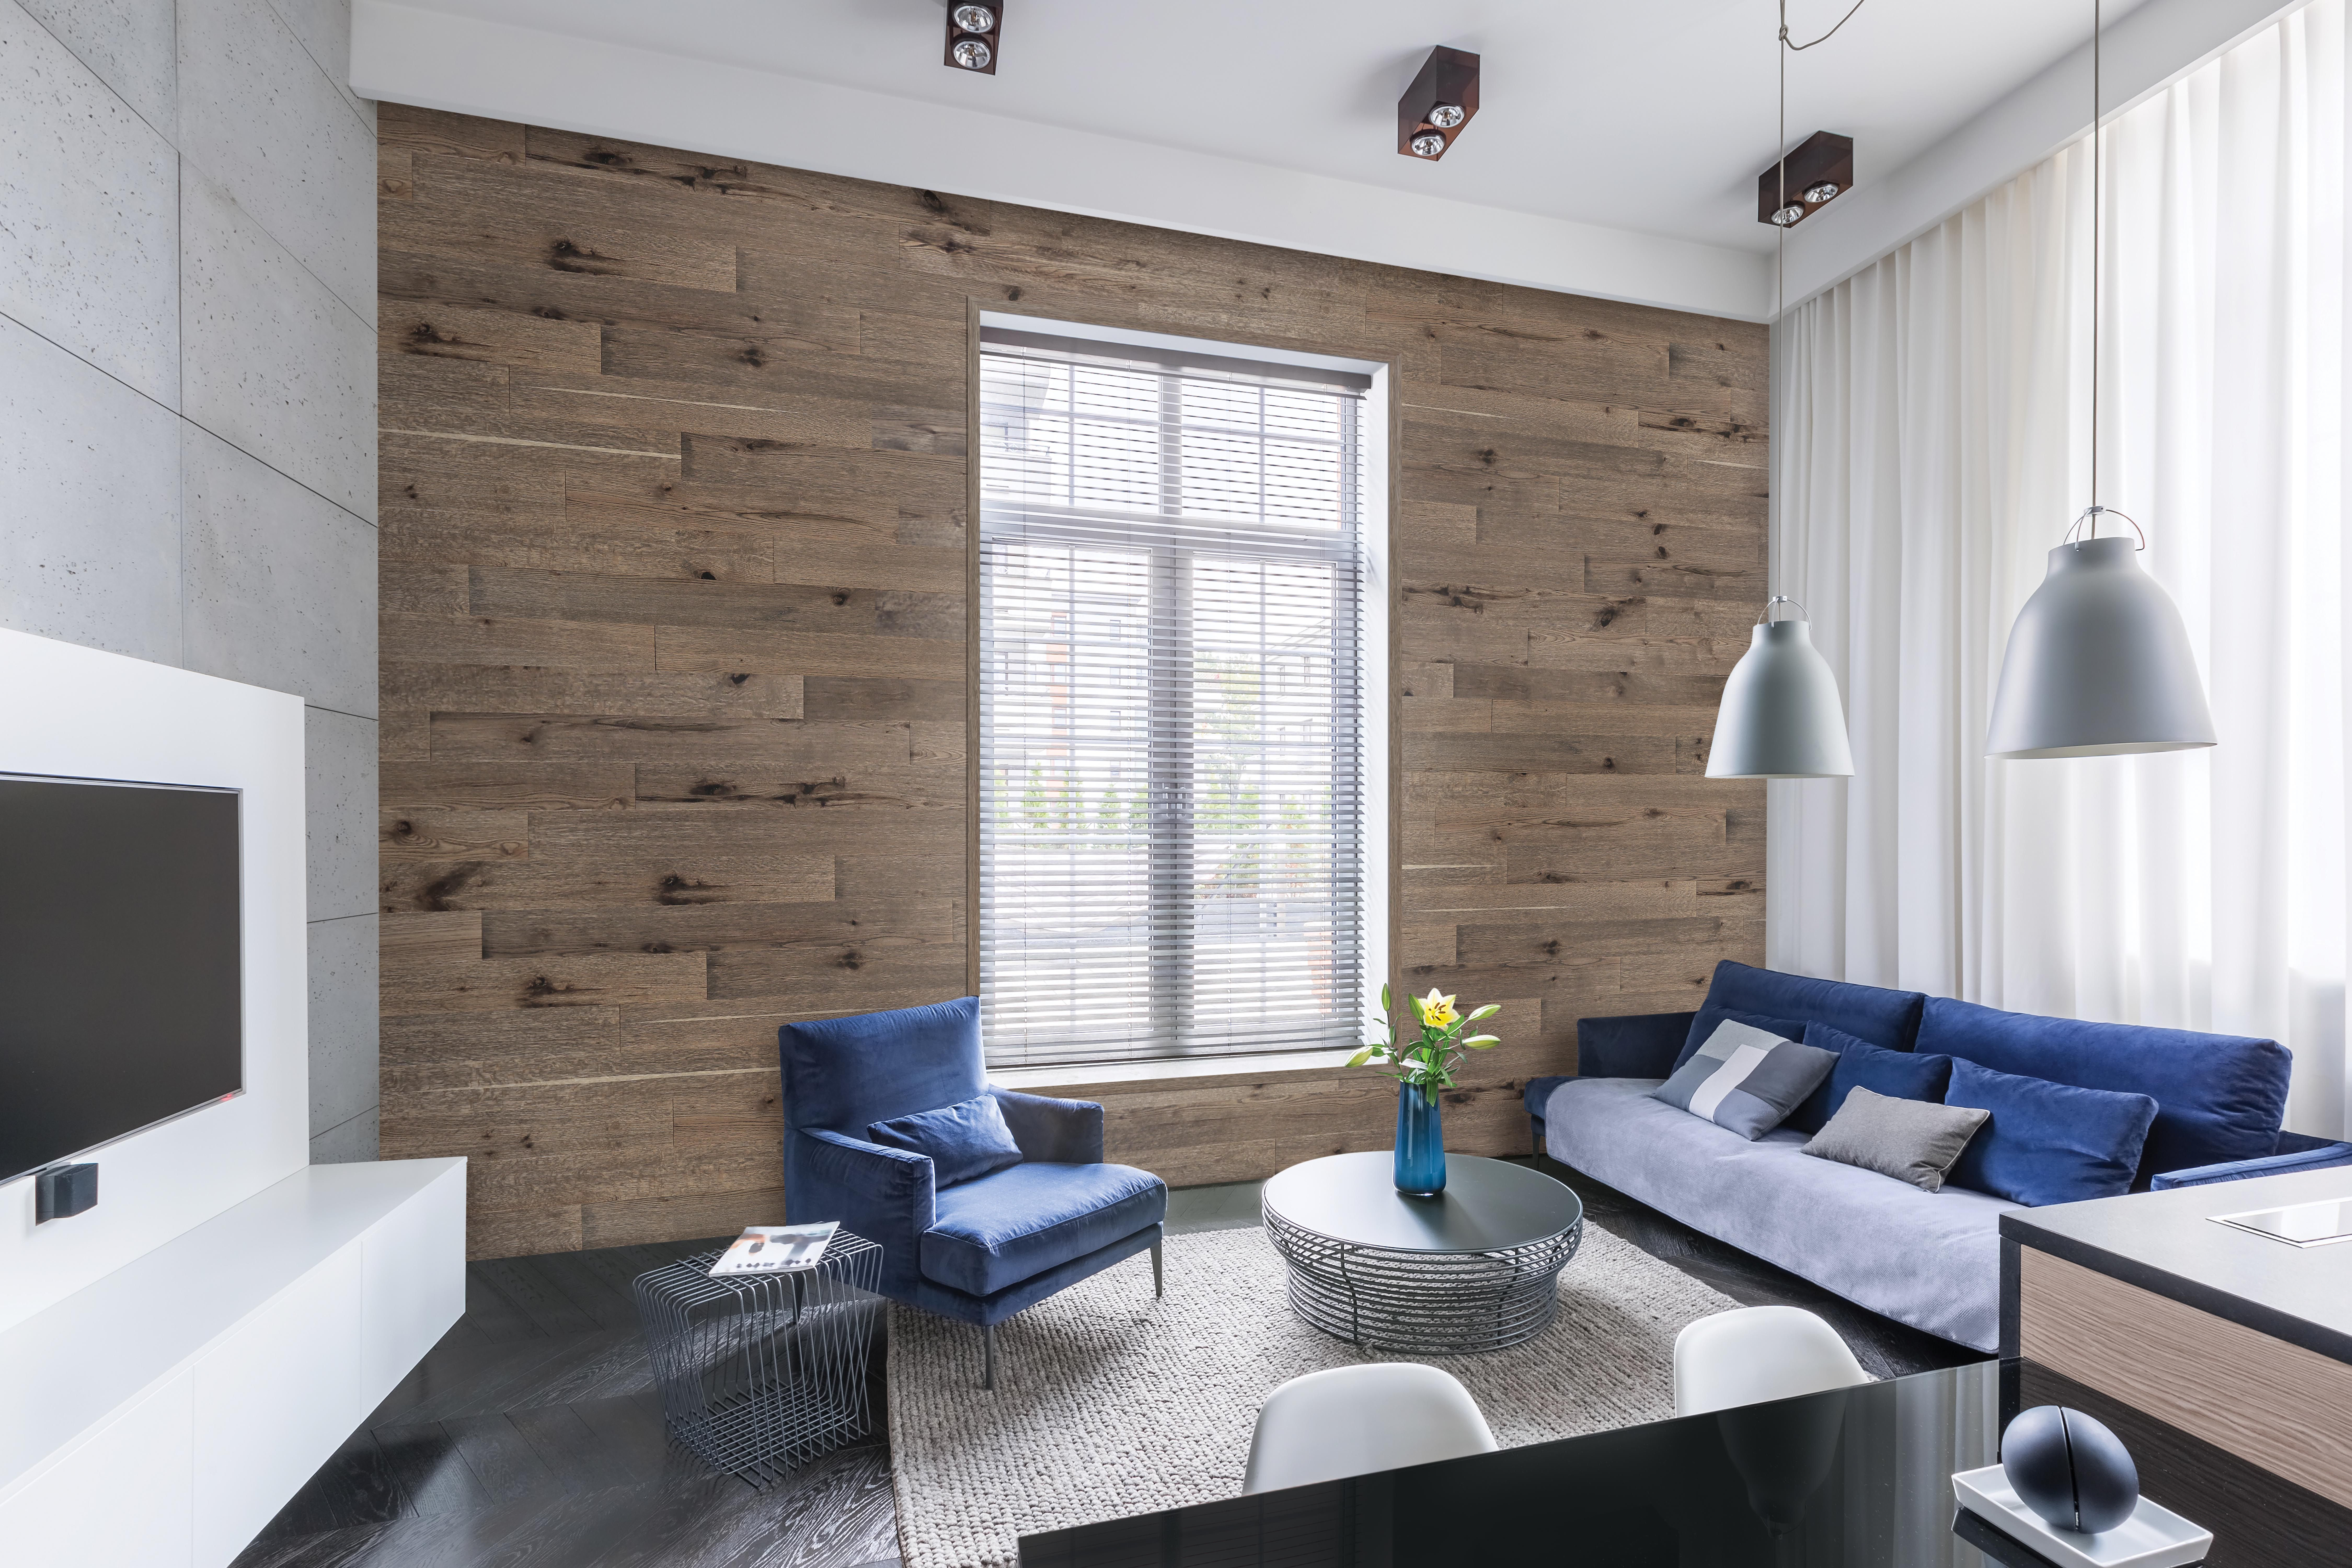 Our reclaimed wall planks are real wood, easy to install